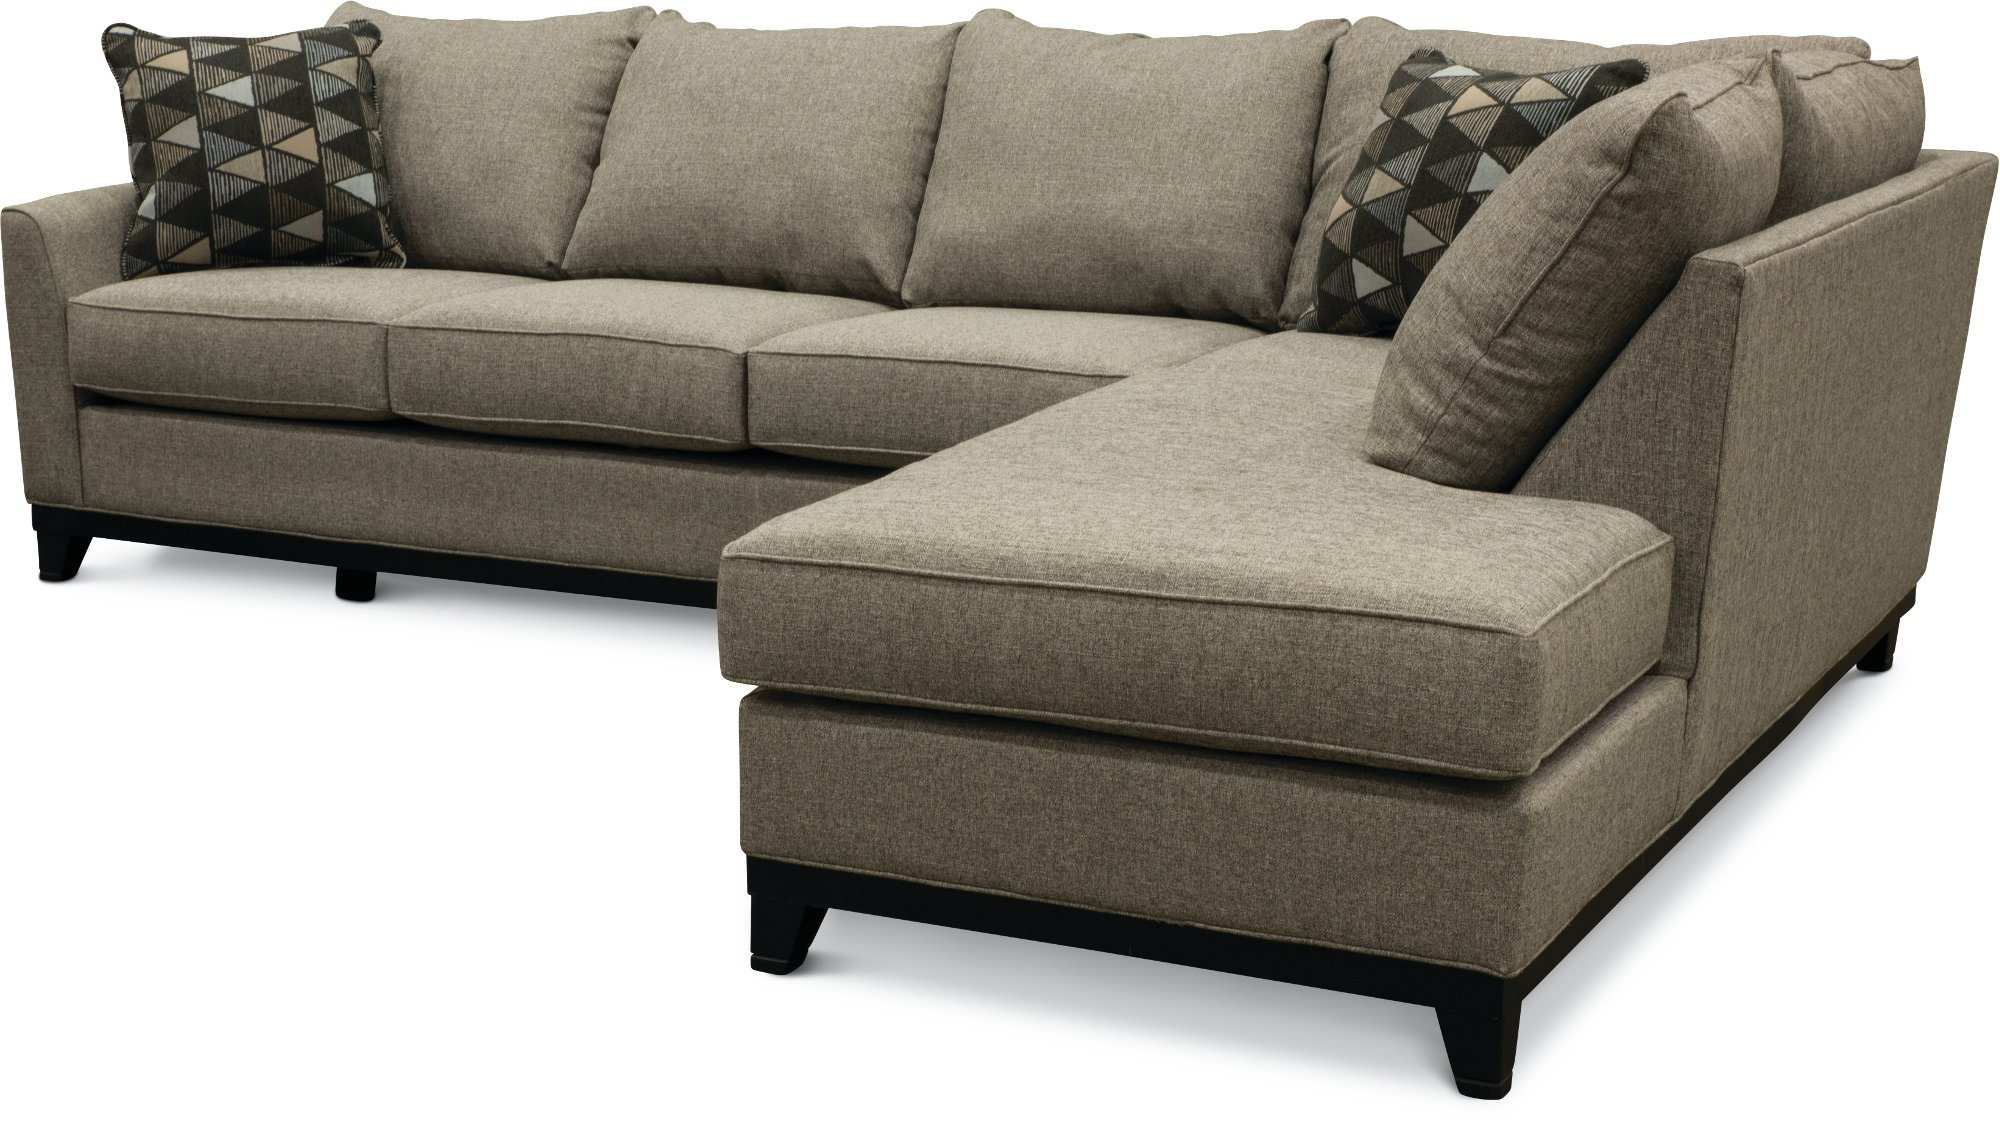 Slate Gray 2 Piece Sectional Sofa With Raf Chaise Emerson